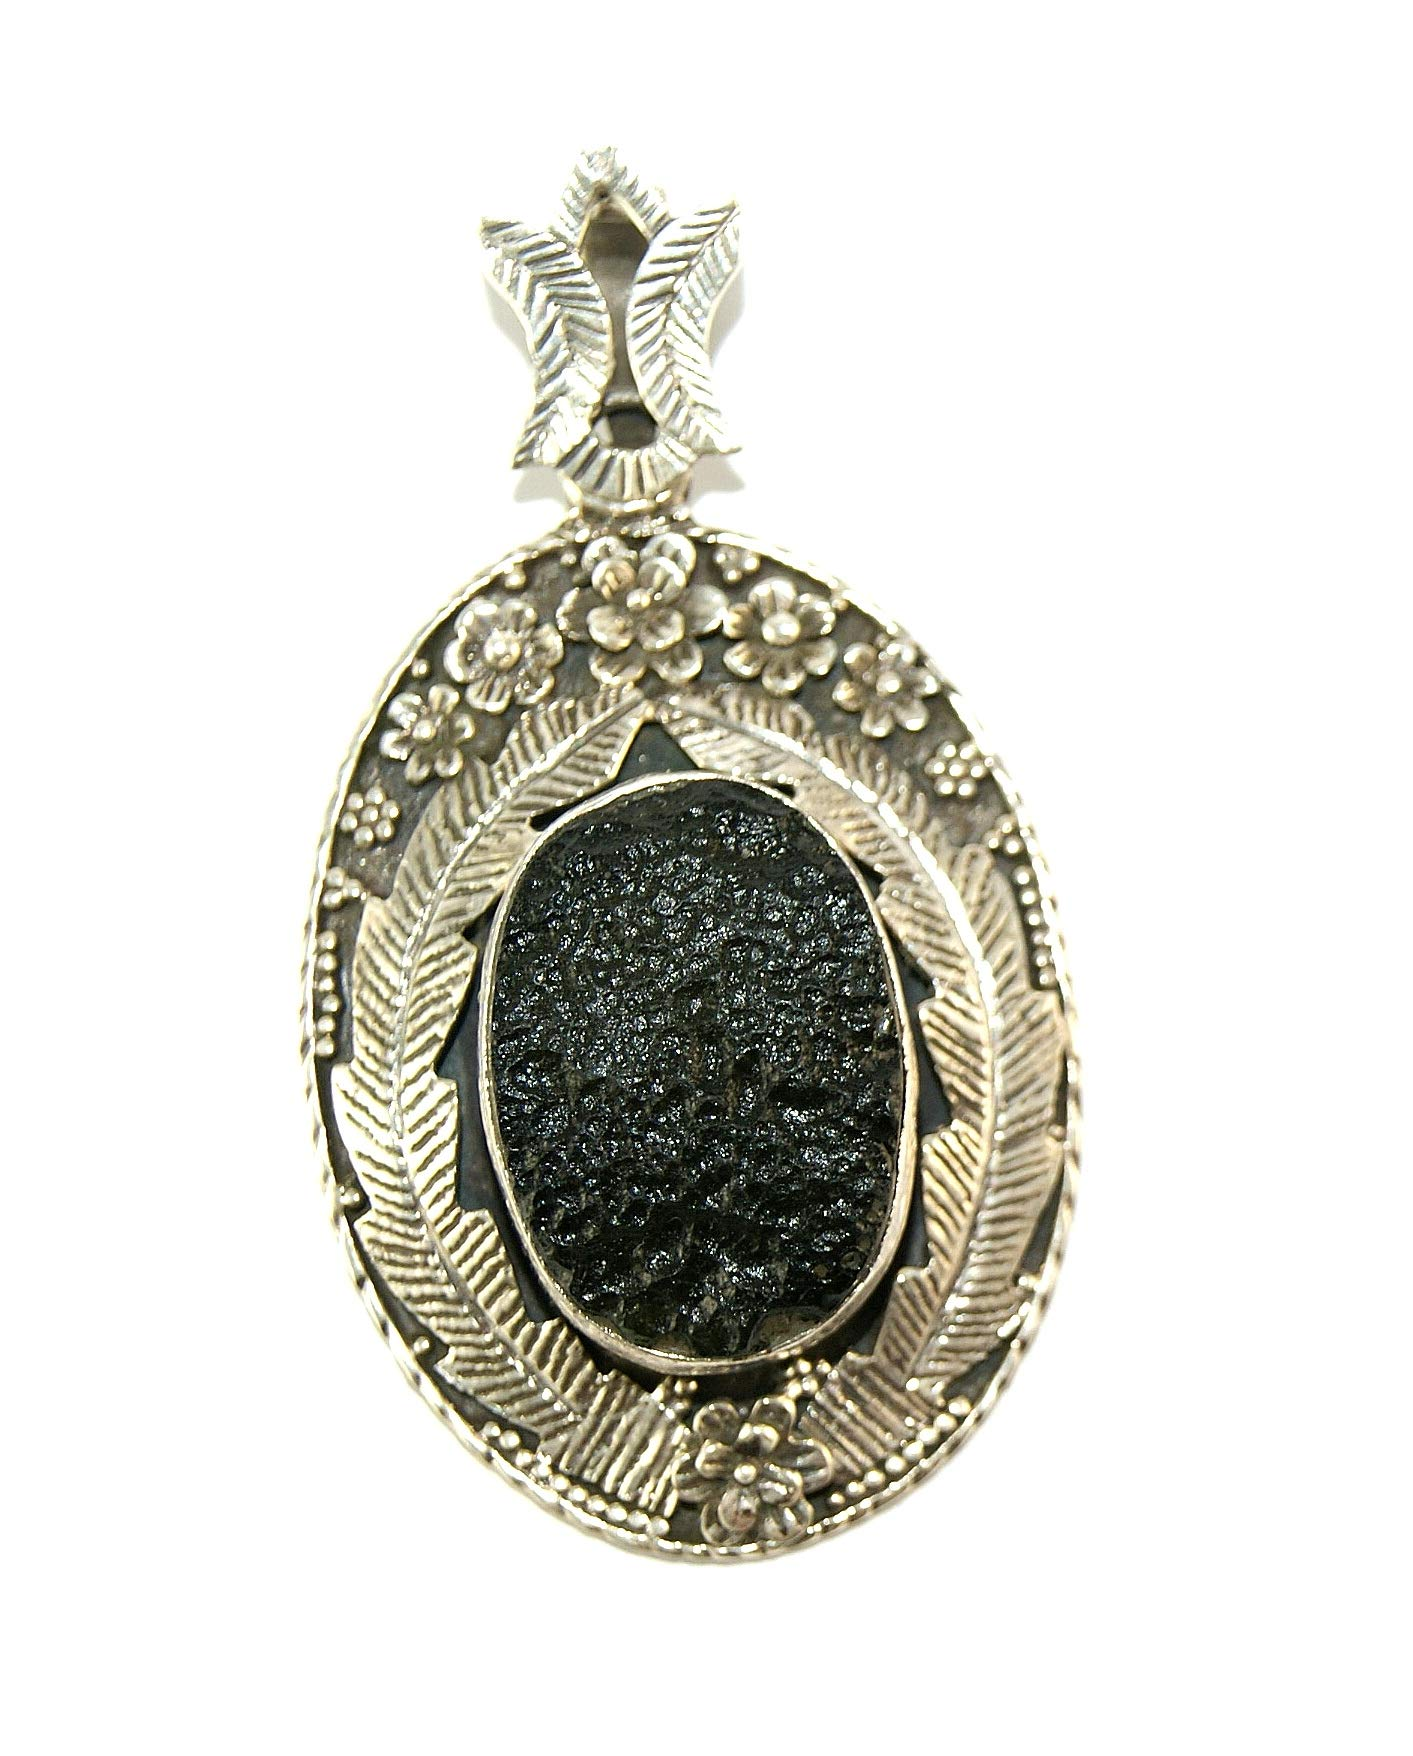 Moldavite Large Sterling Silver Stunning Vintage Design Pendant by Gifts and Guidance